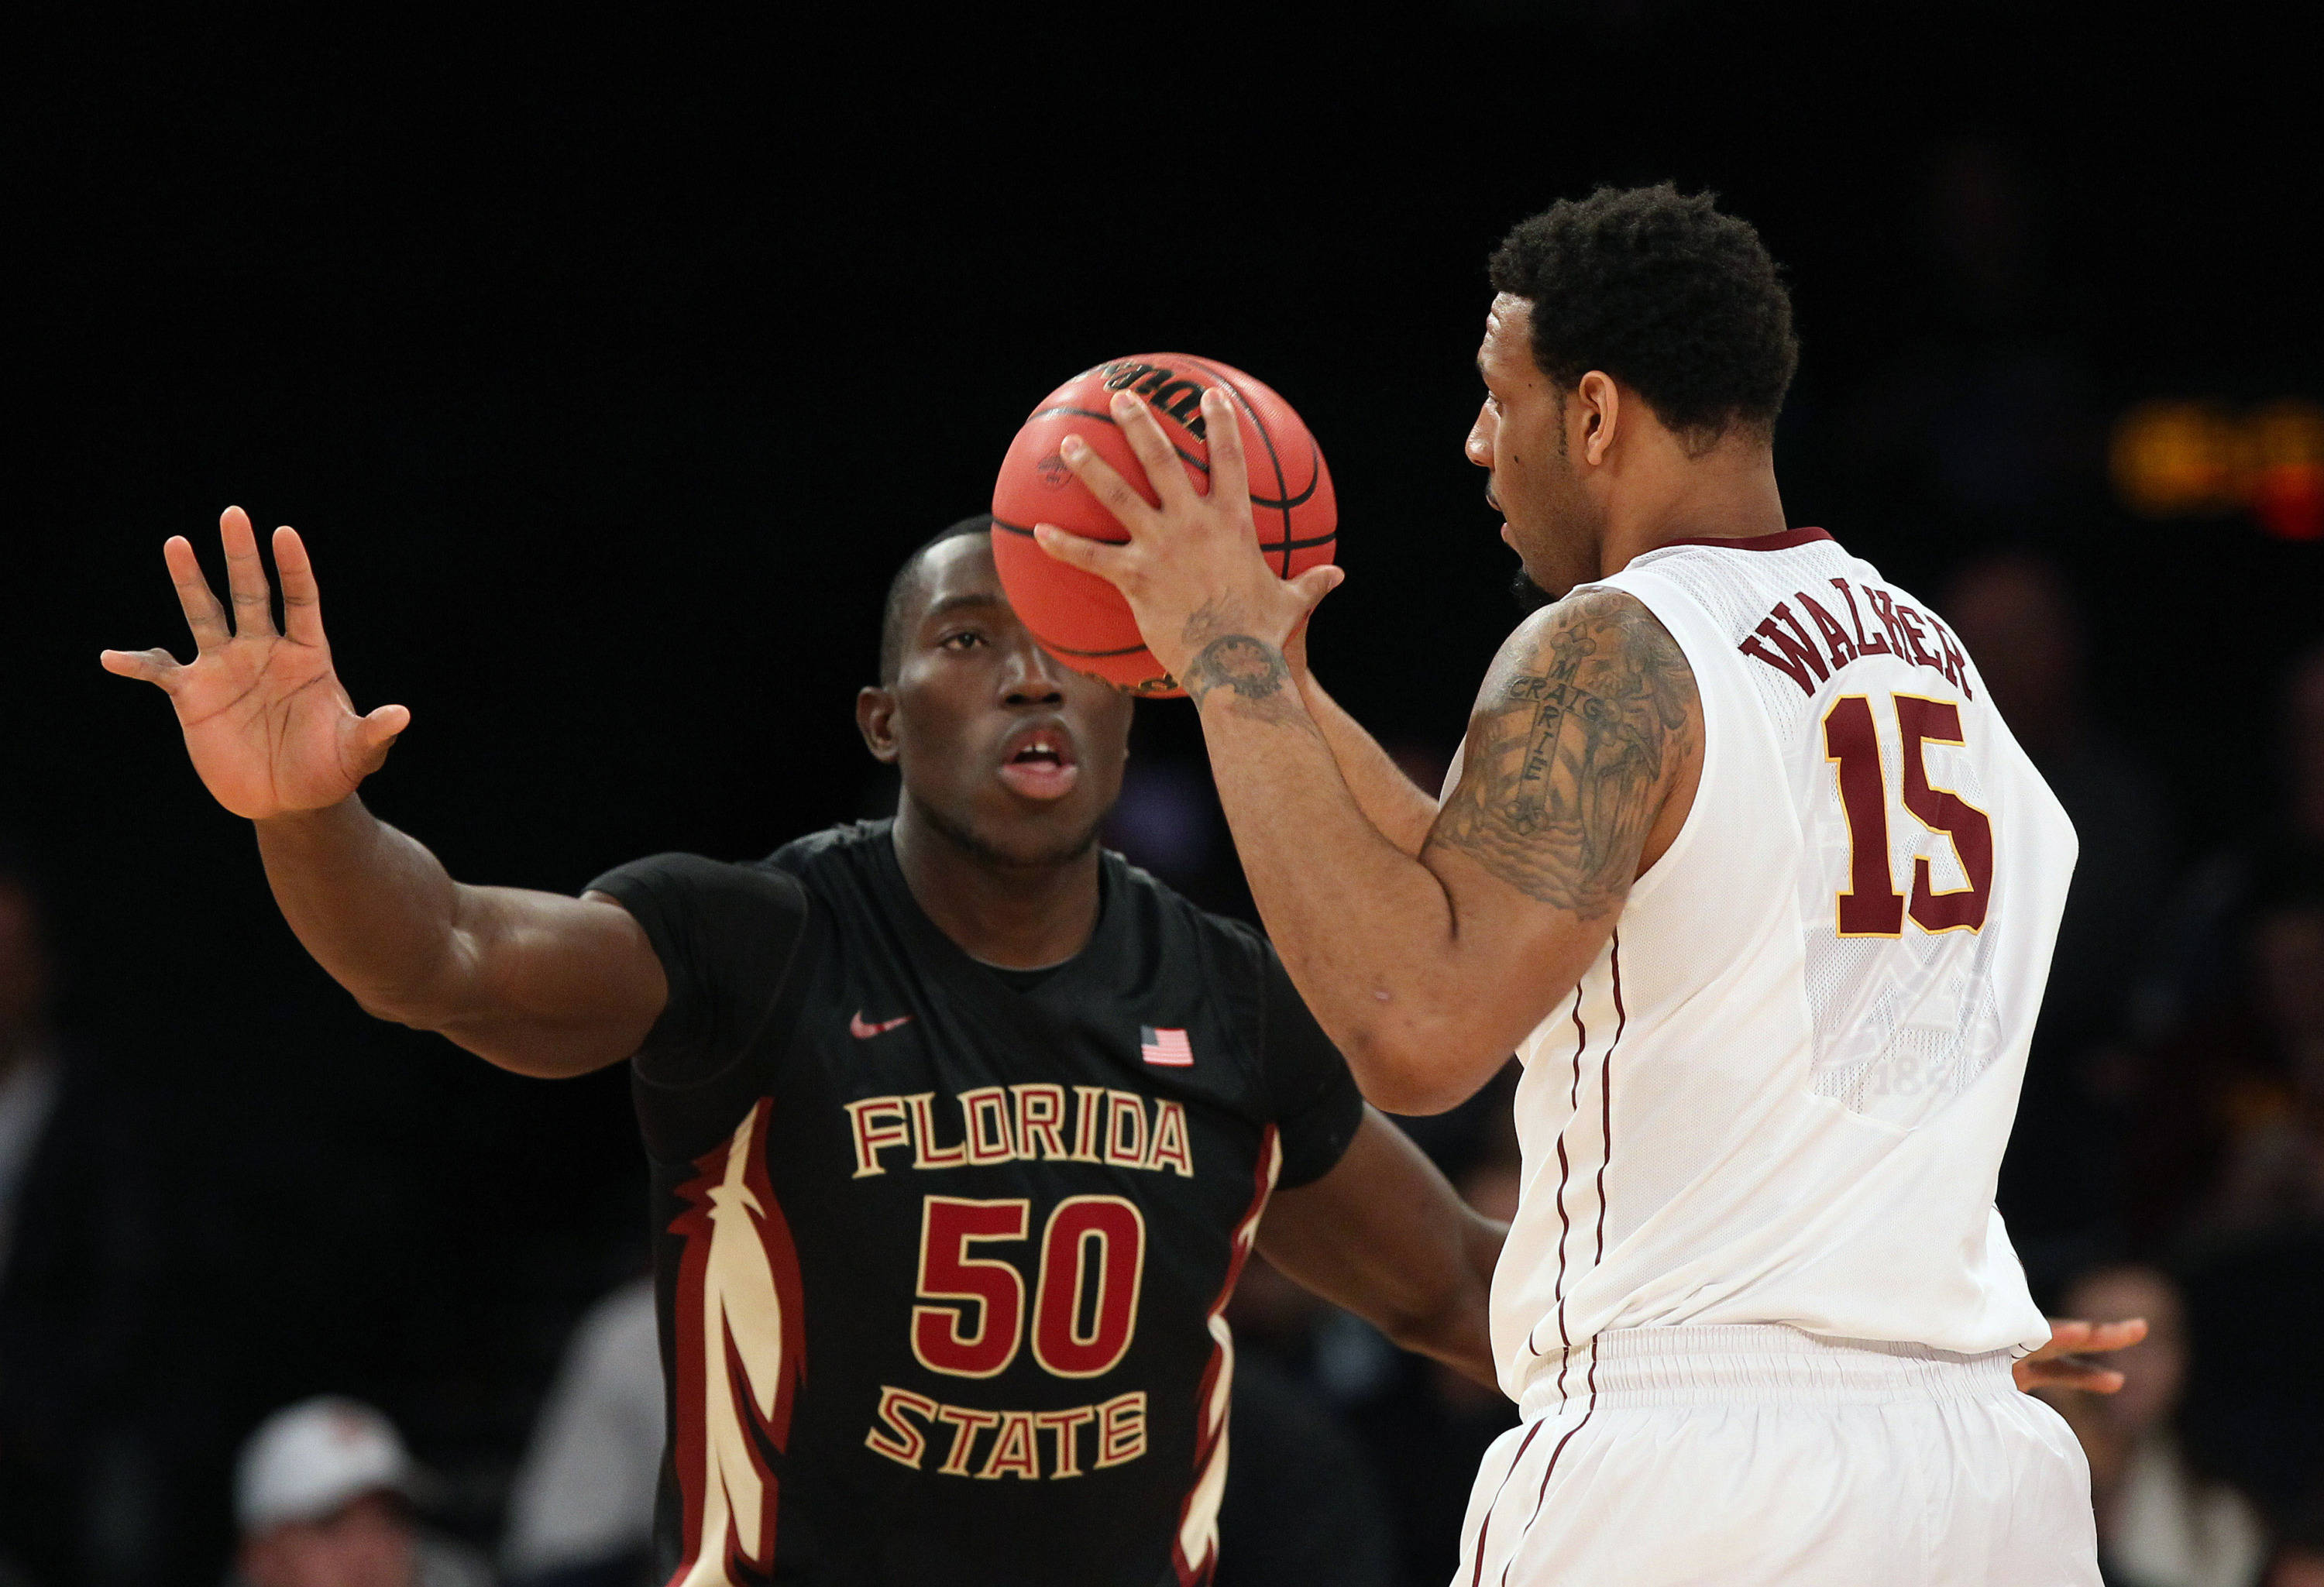 Apr 1, 2014; New York, NY, USA; Minnesota Golden Gophers forward Maurice Walker (15) is defended by Florida State Seminoles center Michael Ojo (50) during the first half at Madison Square Garden. Mandatory Credit: Adam Hunger-USA TODAY Sports